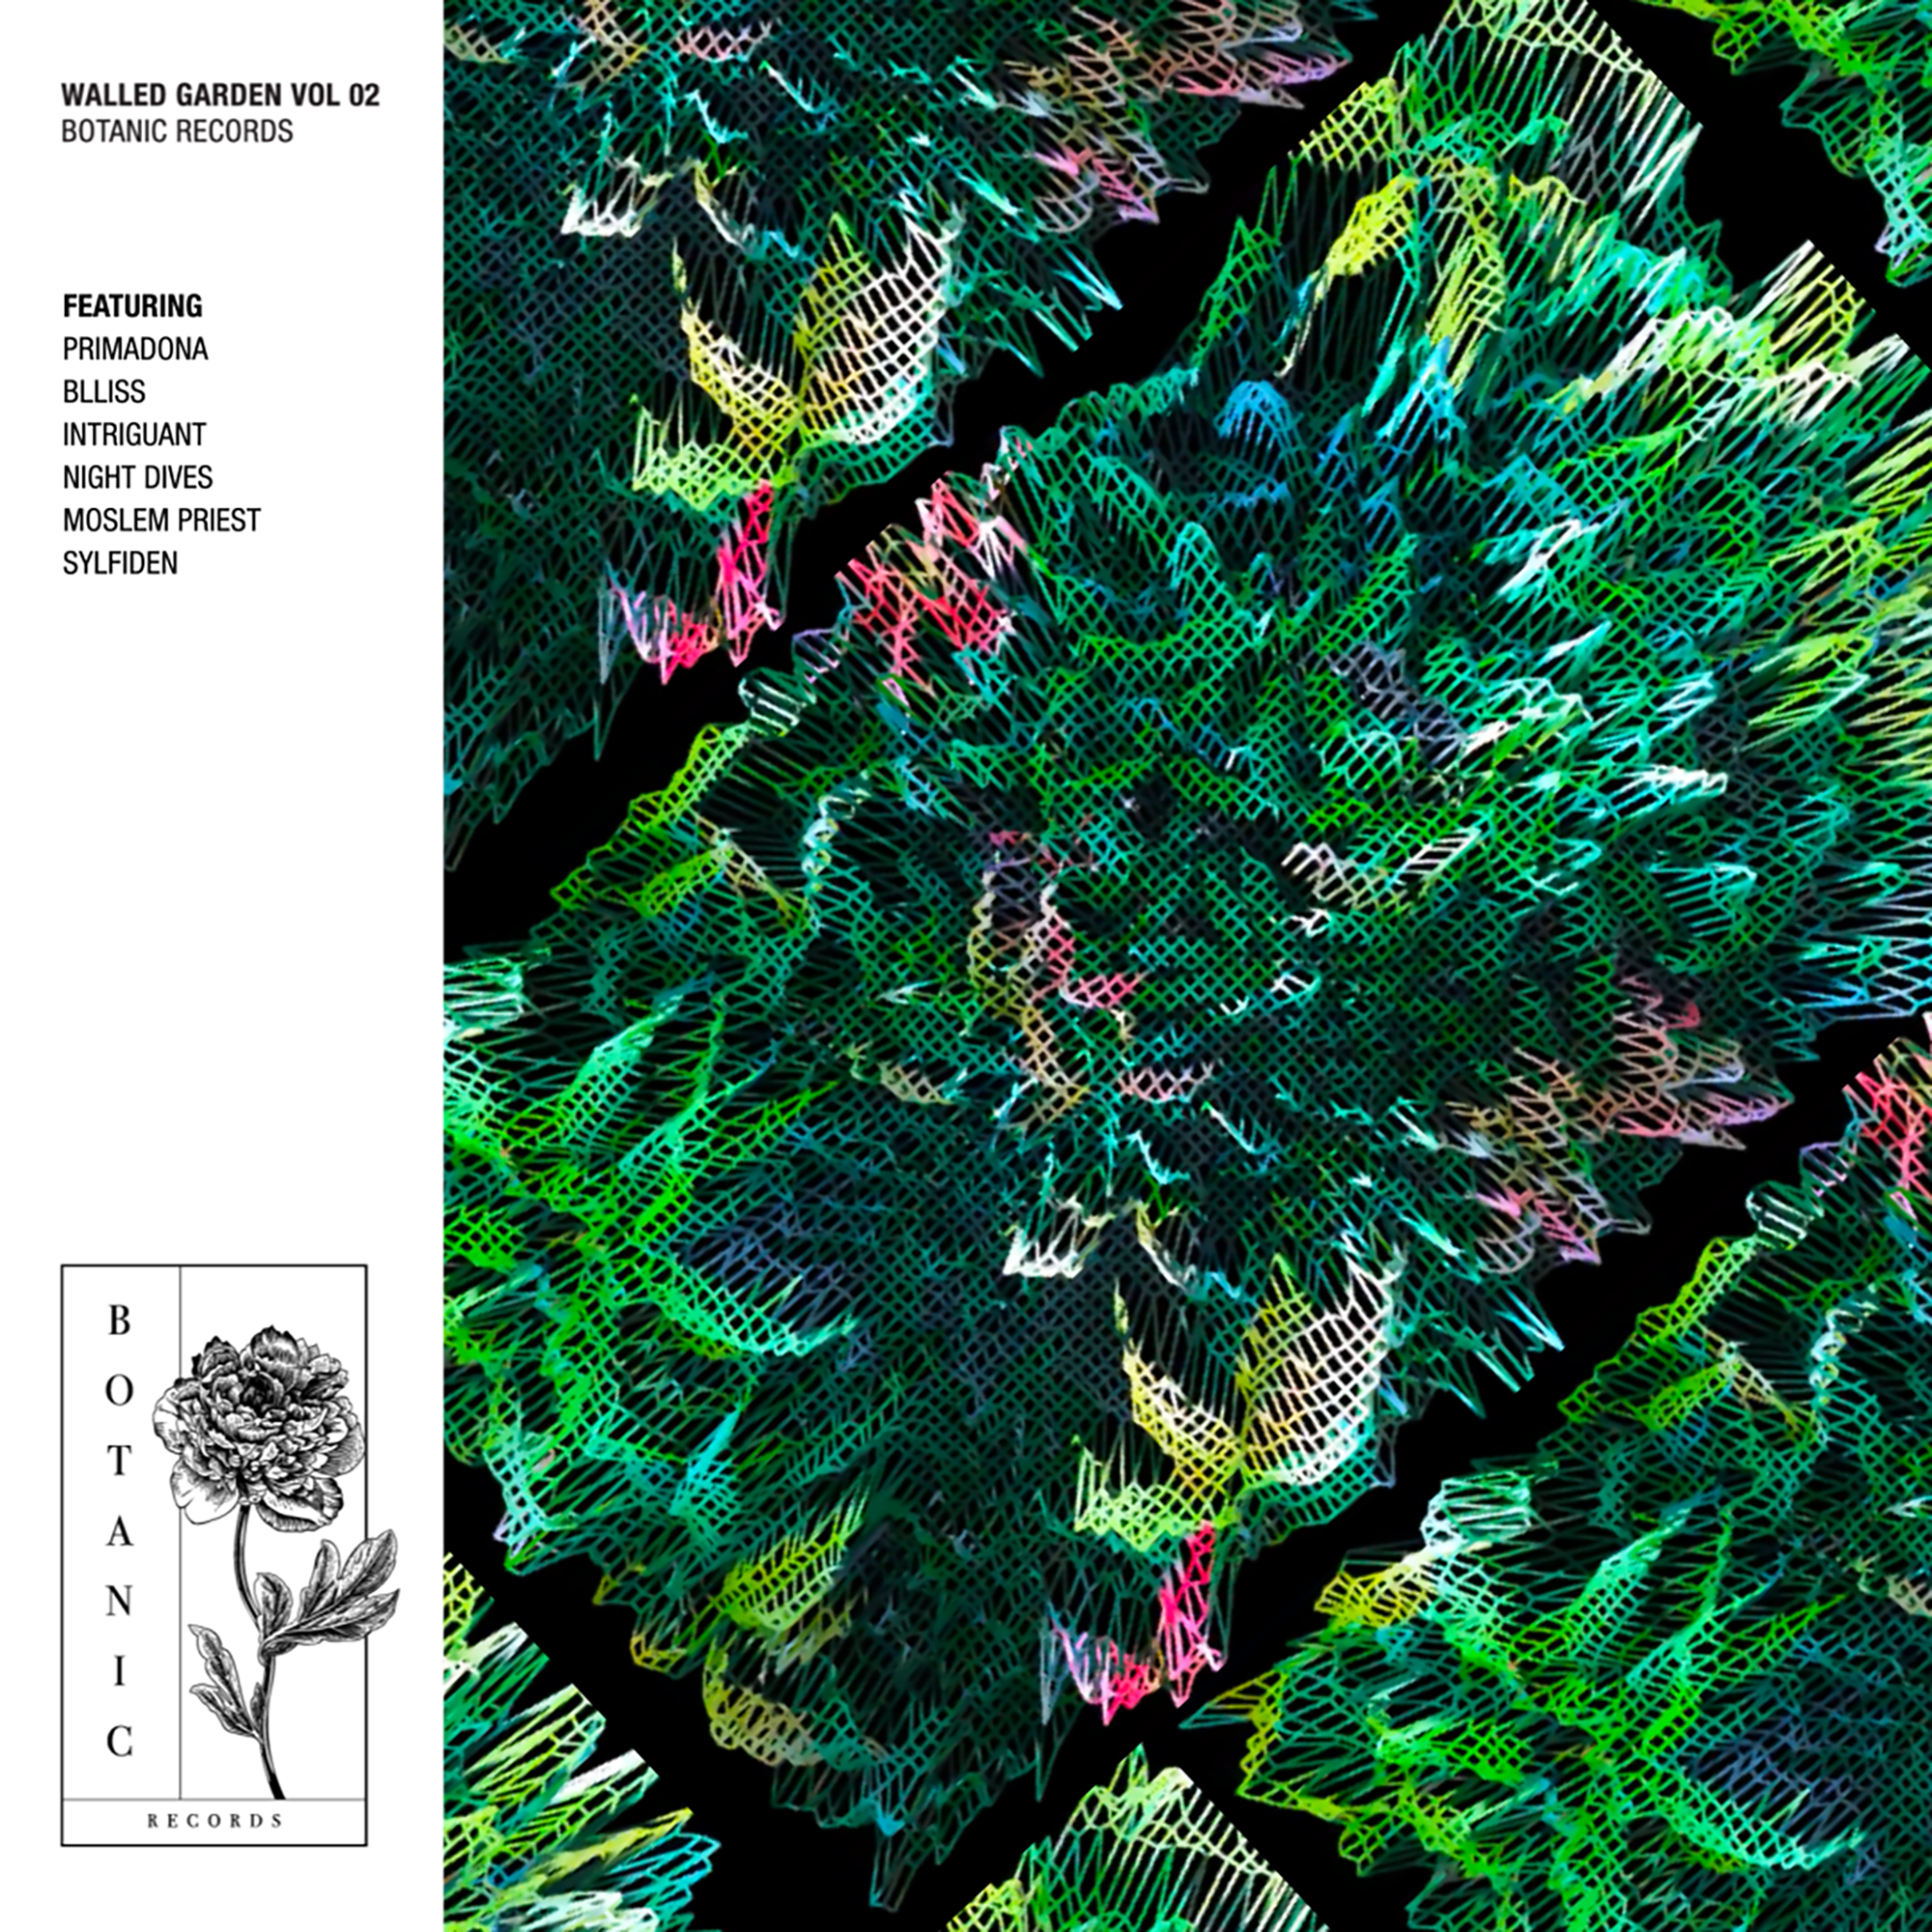 BOTANIC RECORDS - Walled Garden Vol. 02 - cover.png